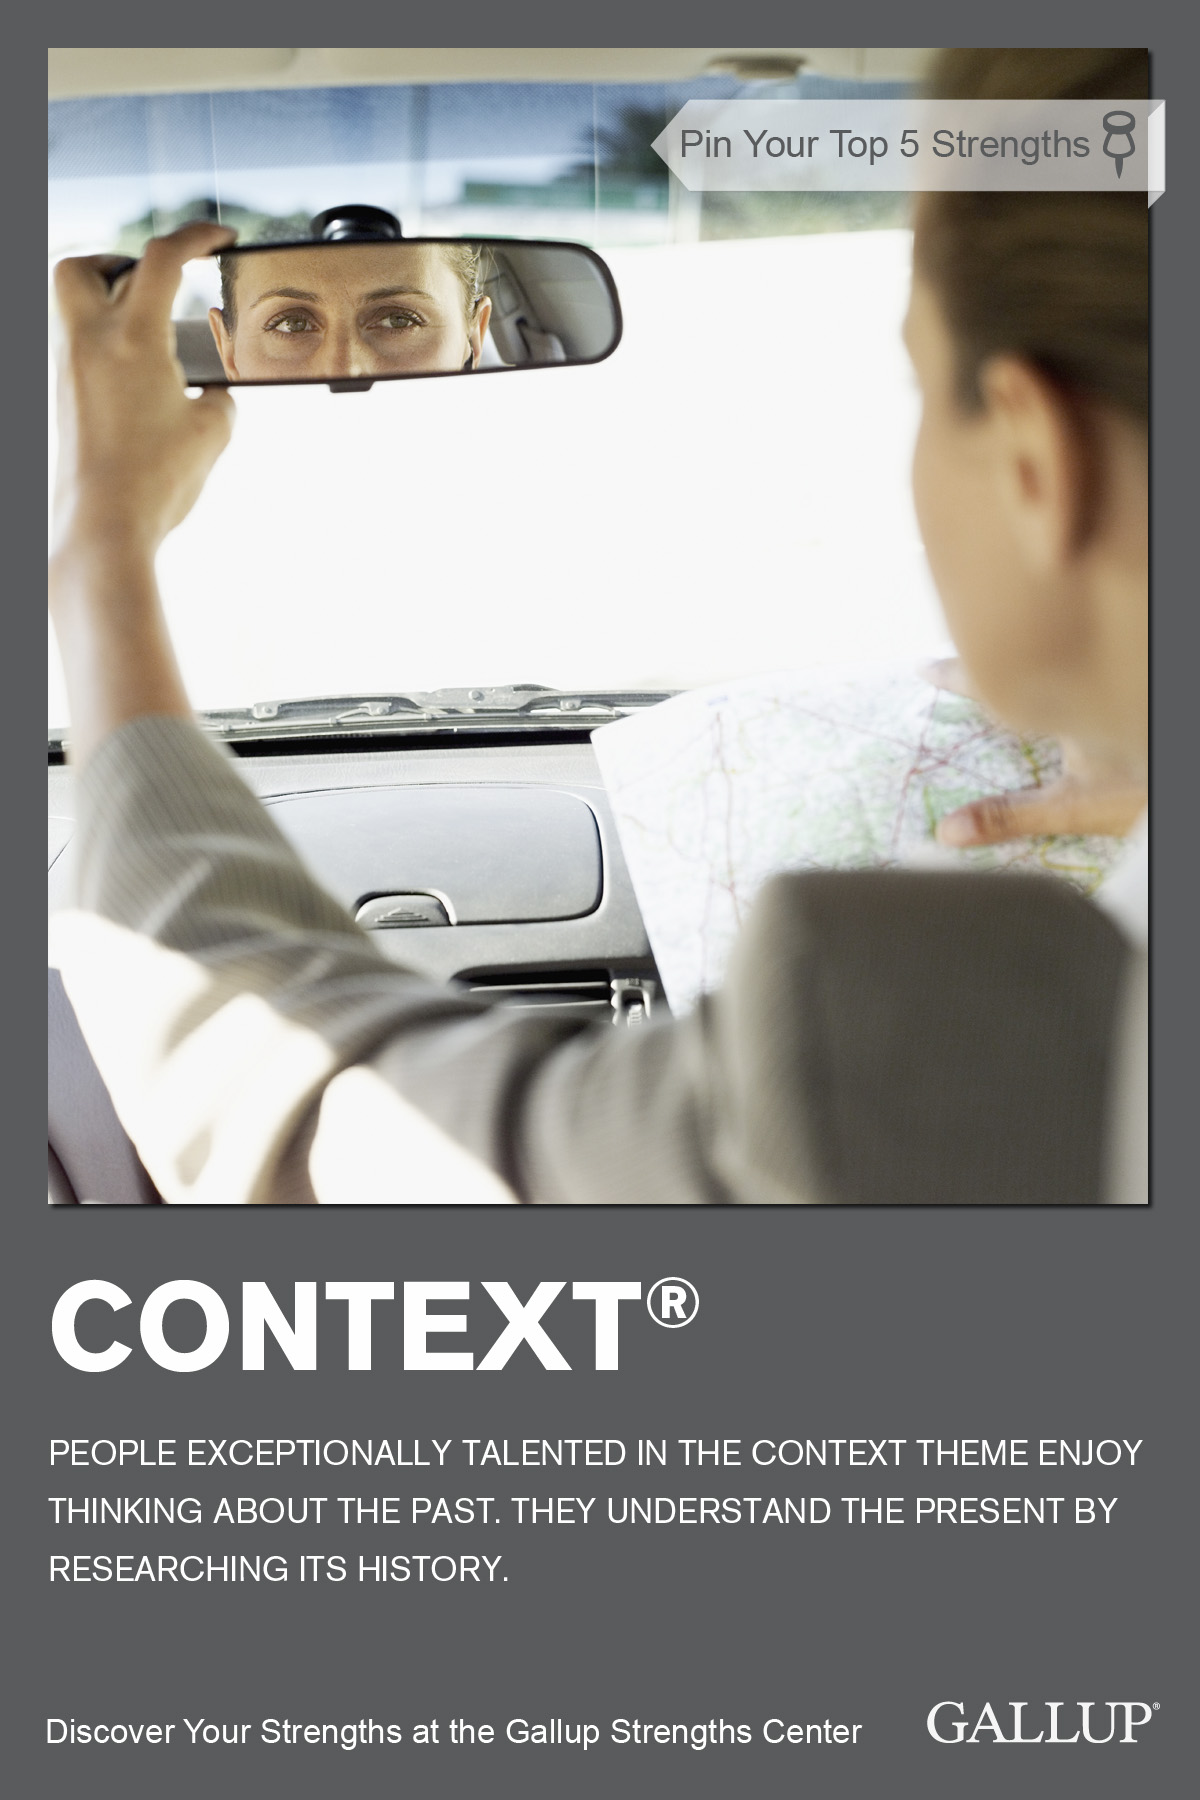 Context Strengths School StrengthsFinder Singapore.jpg